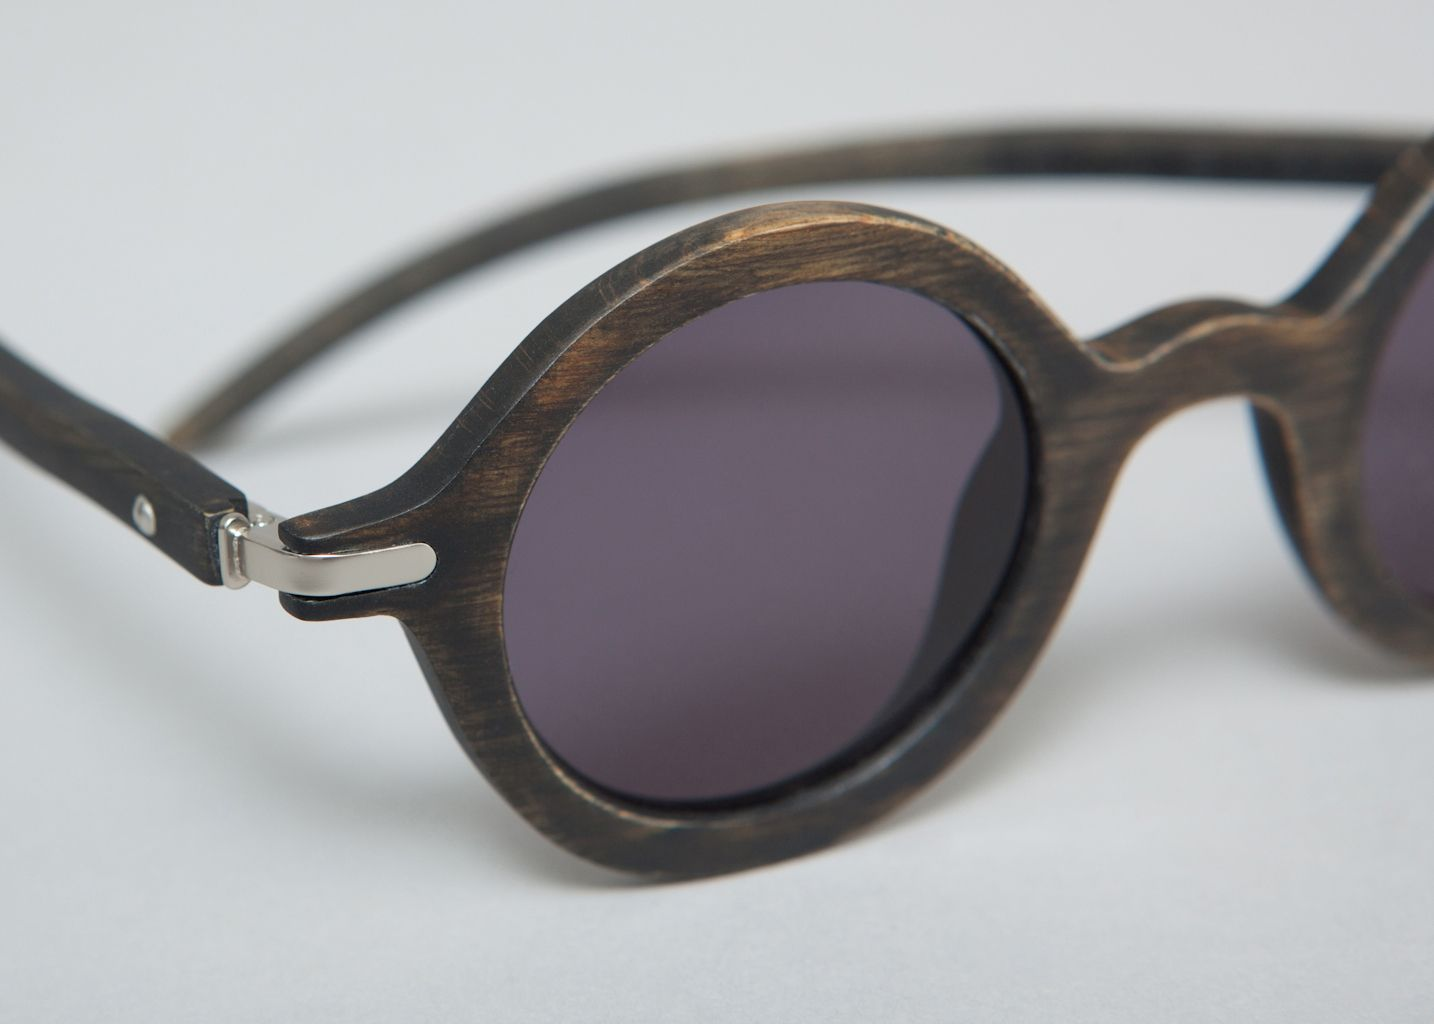 Lunettes 19.6g - Waiting For The Sun